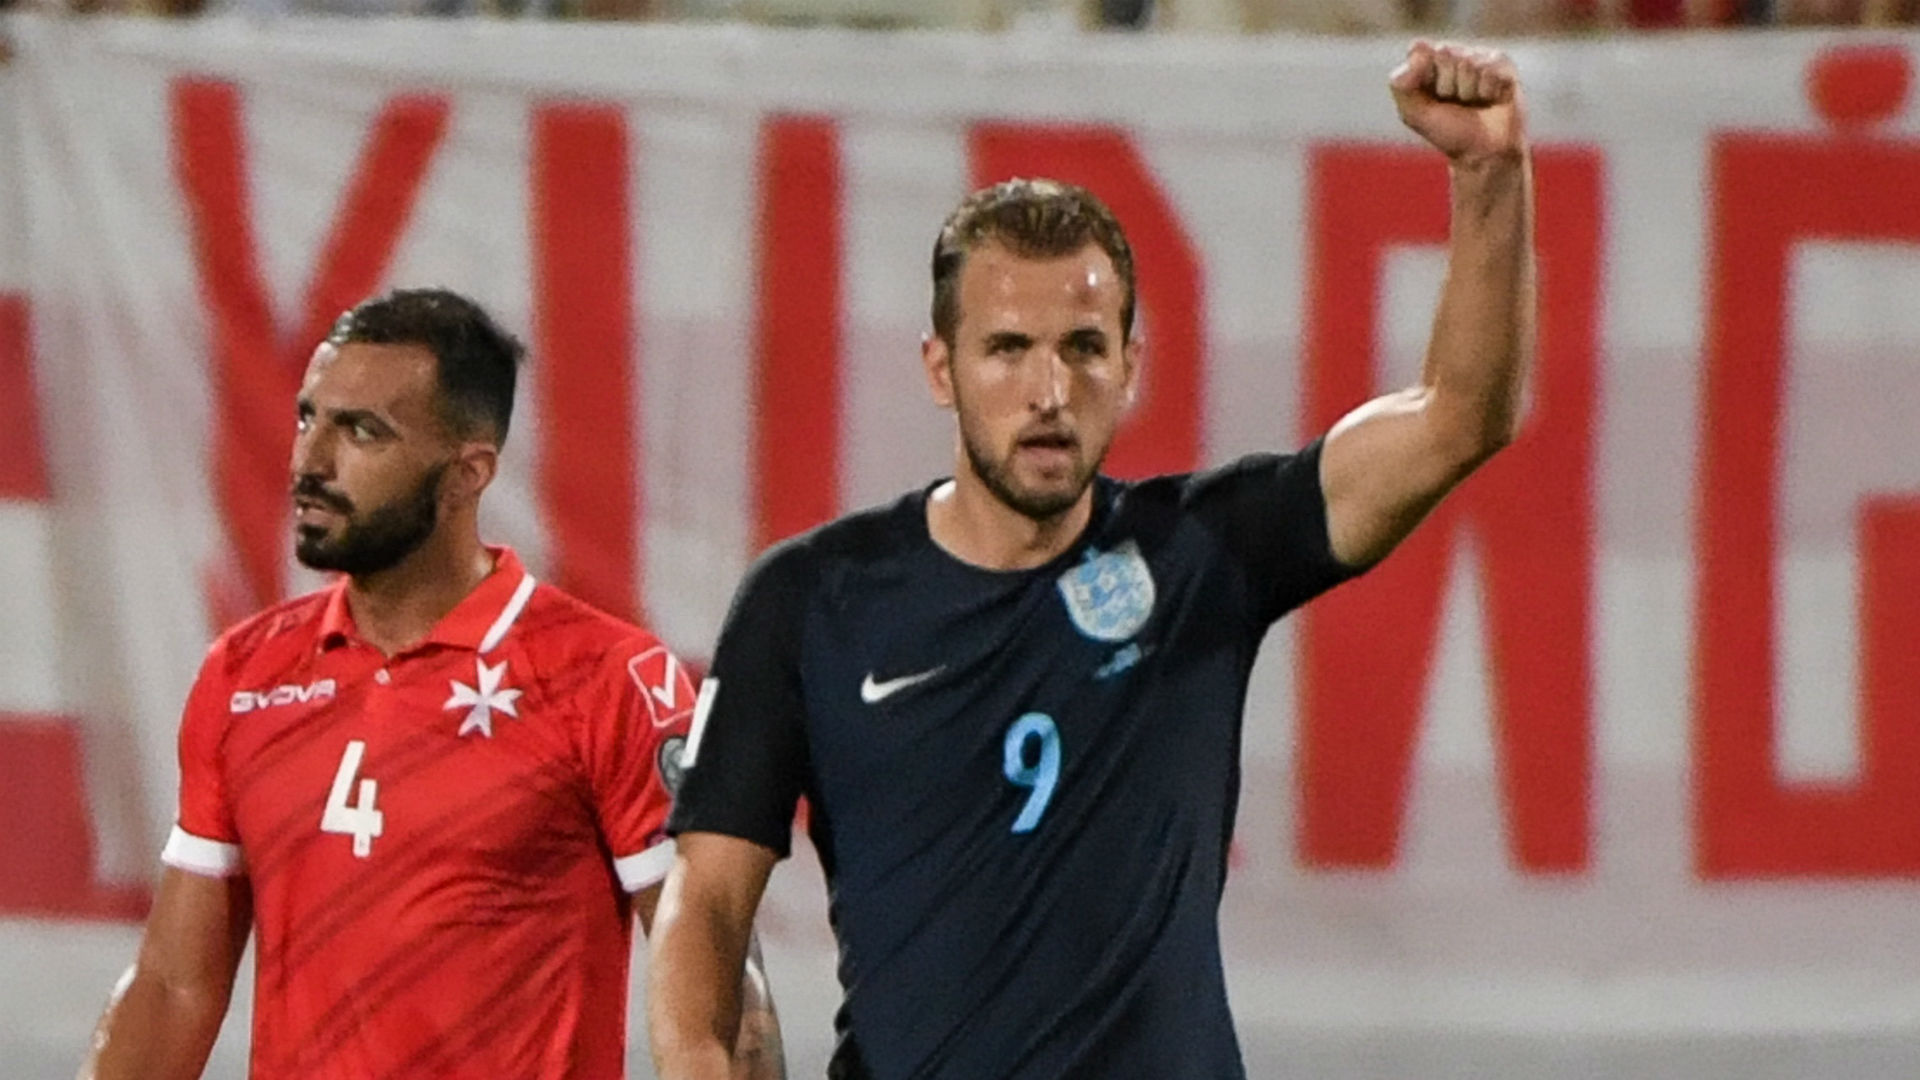 Malta vs England WC Qualifying UEFA Match Preview